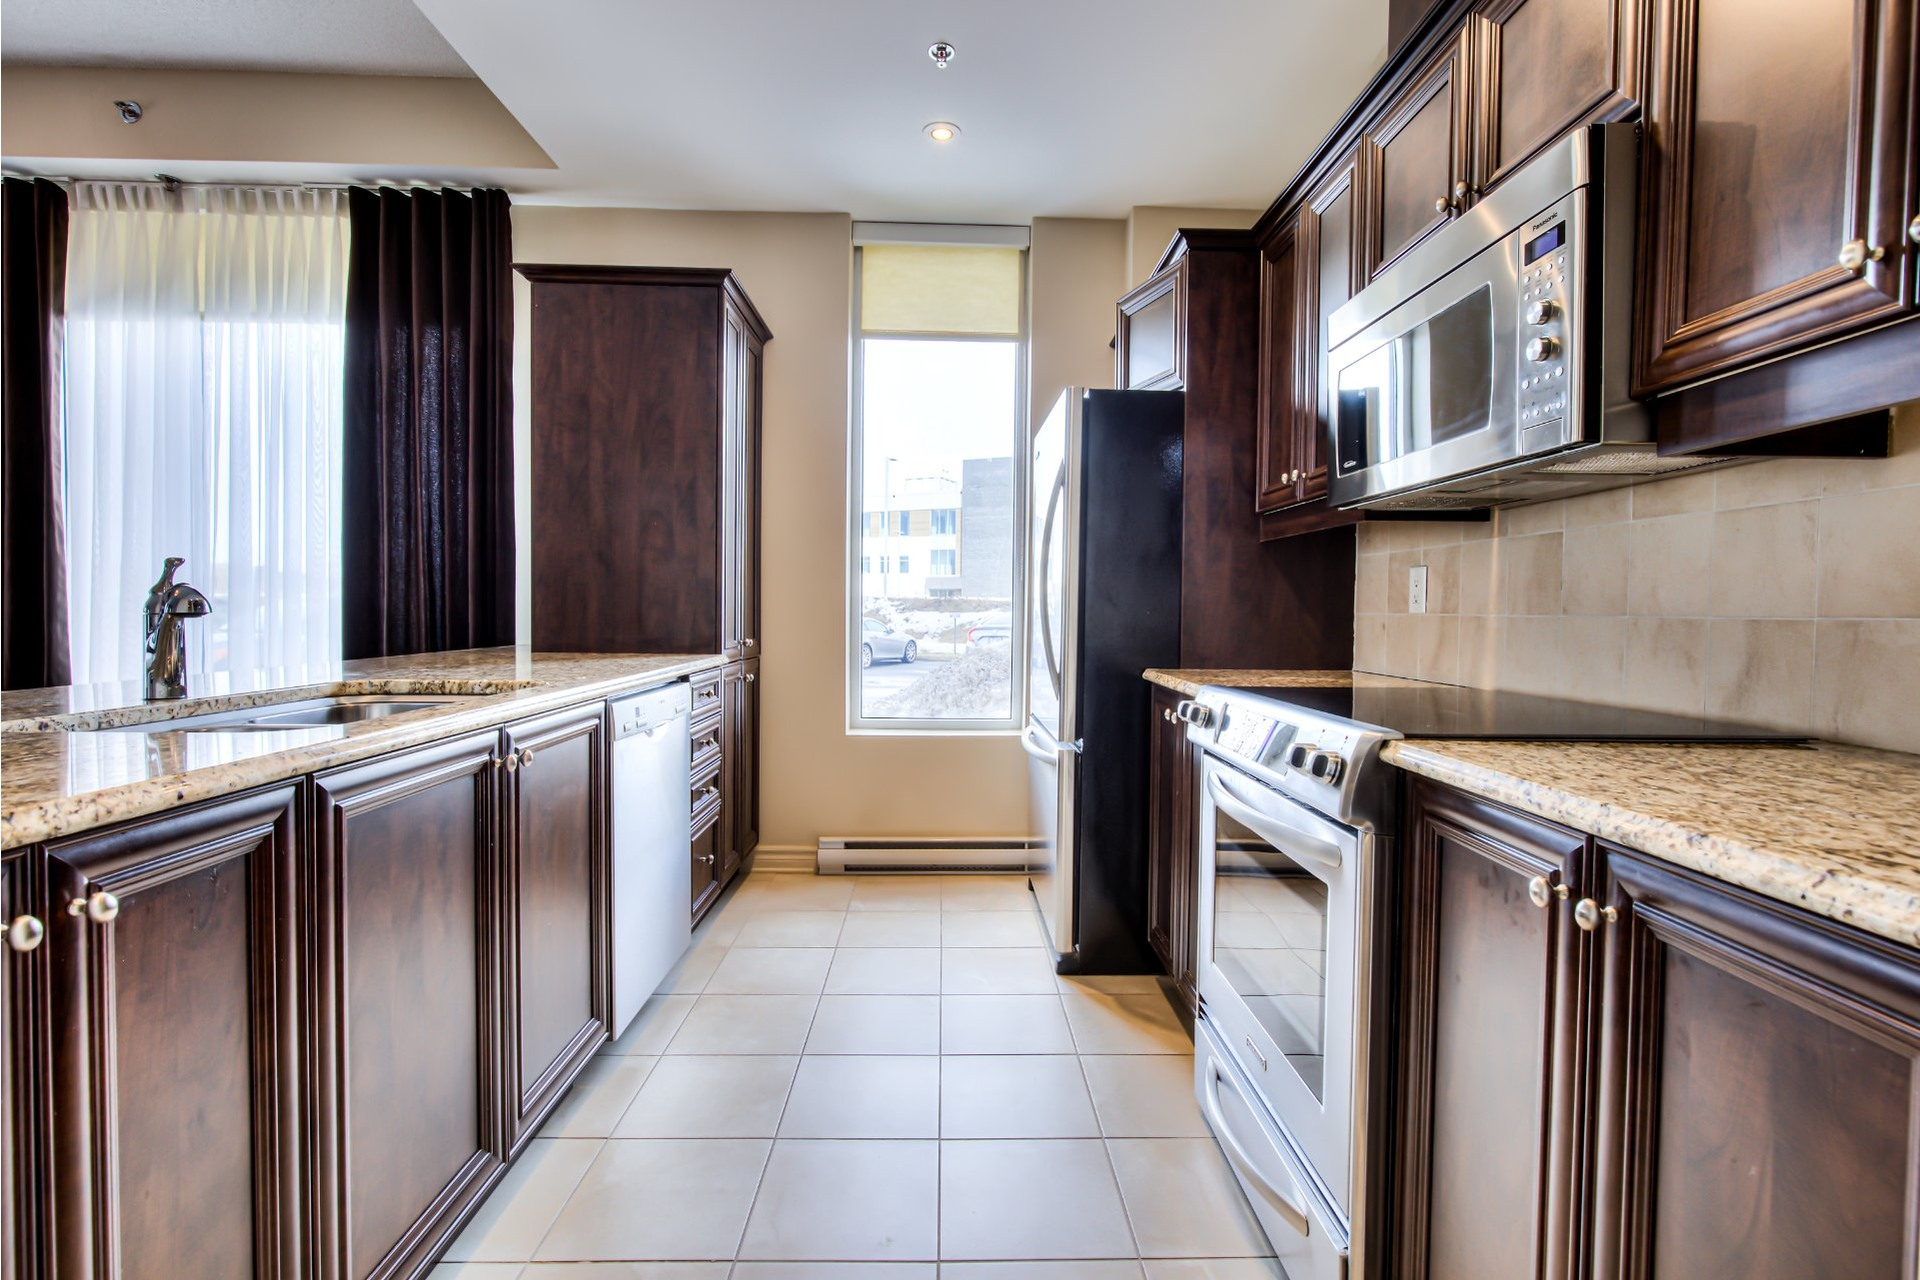 Apartment For sale Vaudreuil-Dorion - 8 rooms